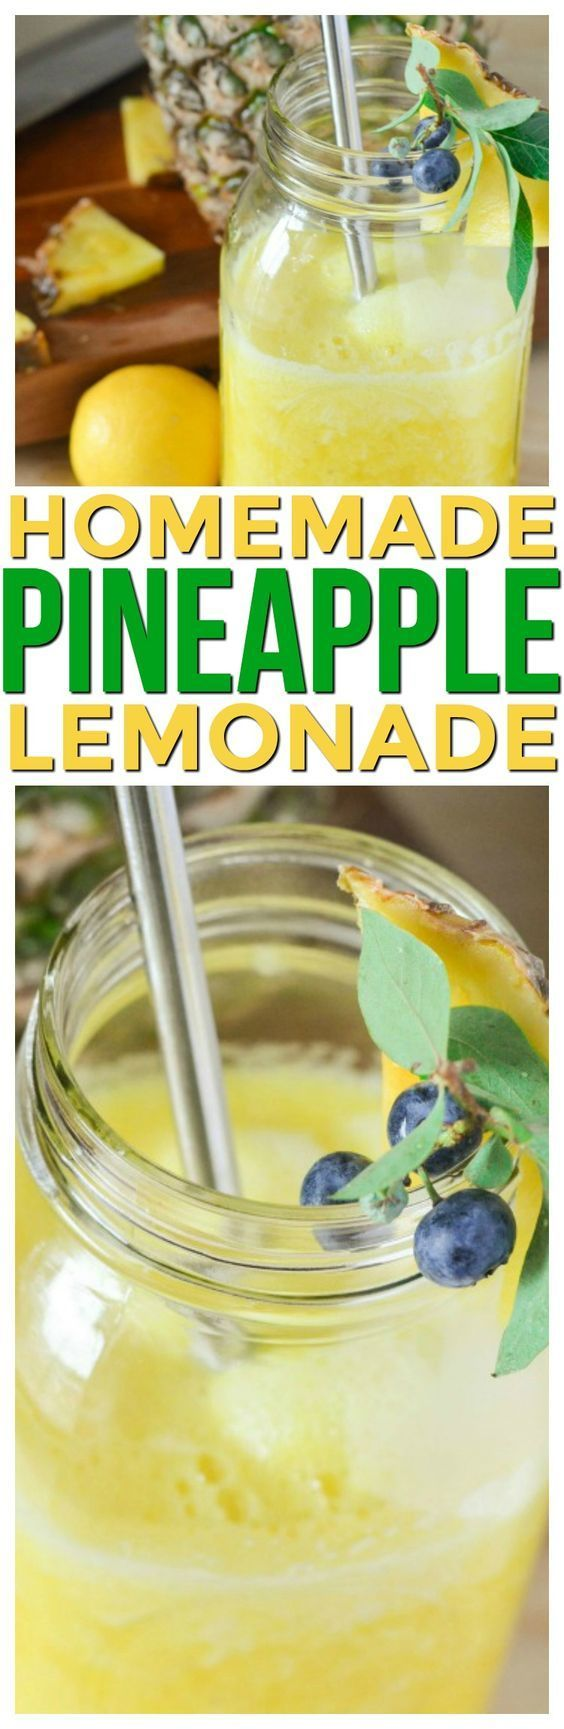 This frosty Pineapple Lemonade Recipe Homemade is perfection! Make it if you need a refreshing drink or homemade drink recipes nonalcoholic for kids it's a healthy summer beverage.